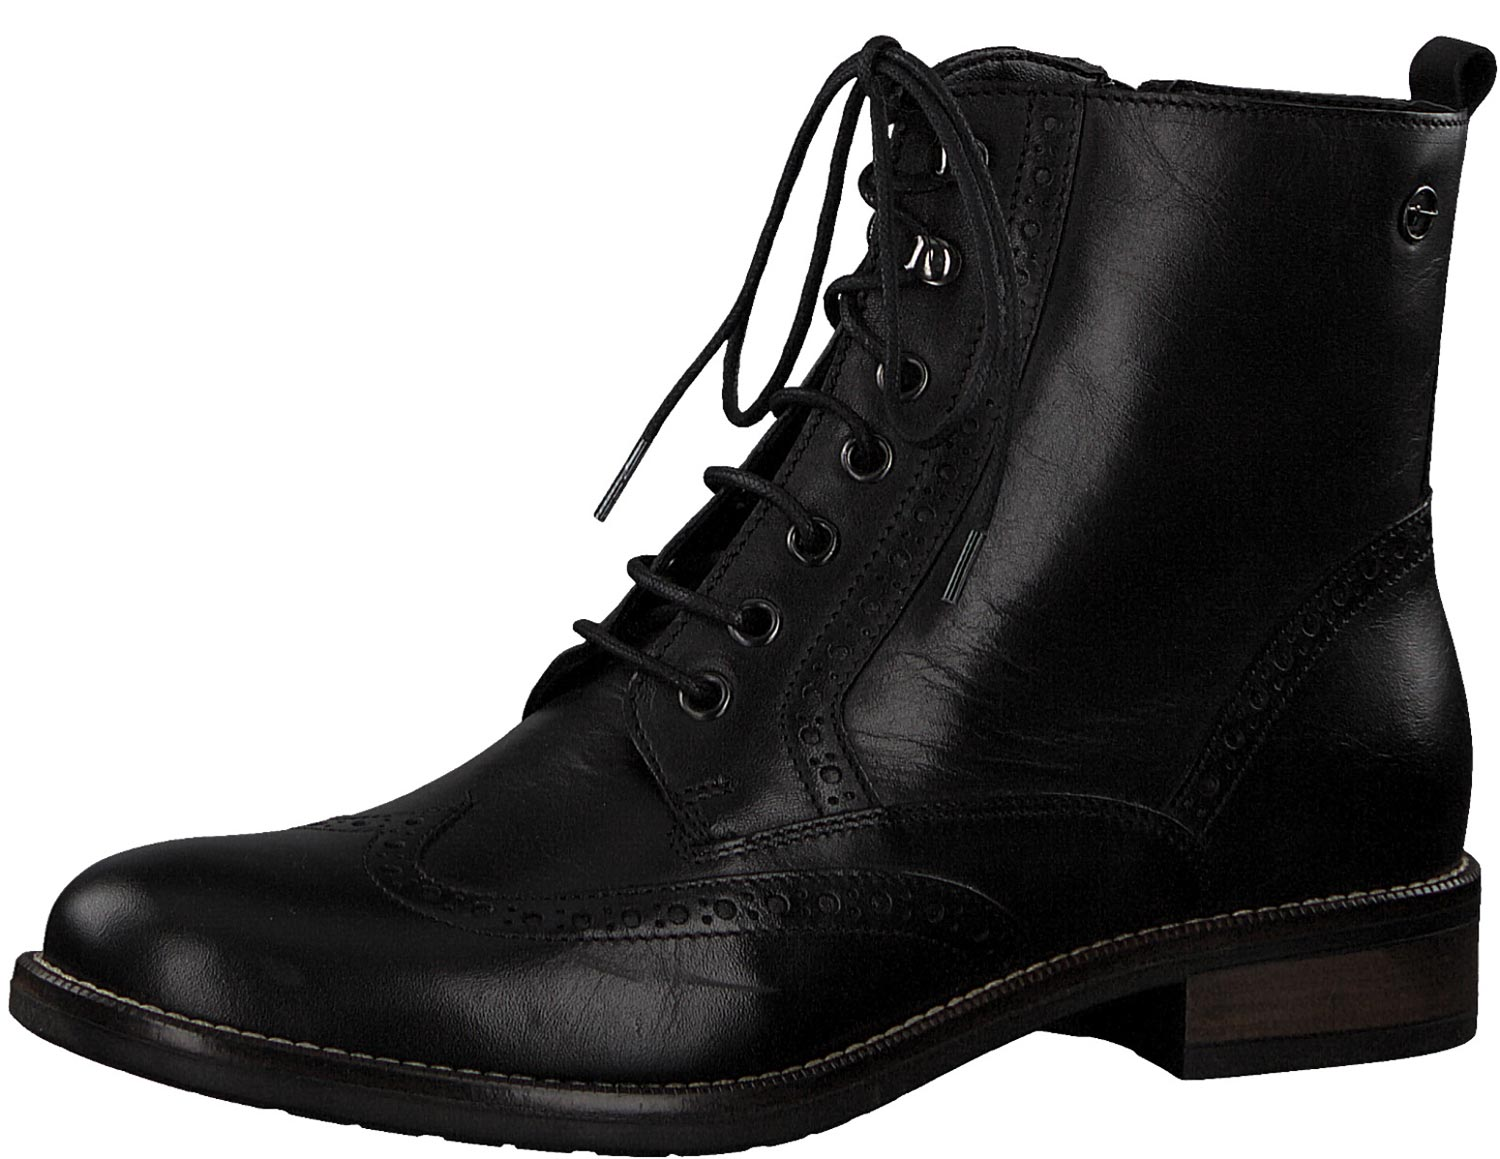 Tamaris Women's Boots Ankle Boots Winter 25126-21 001 Black New